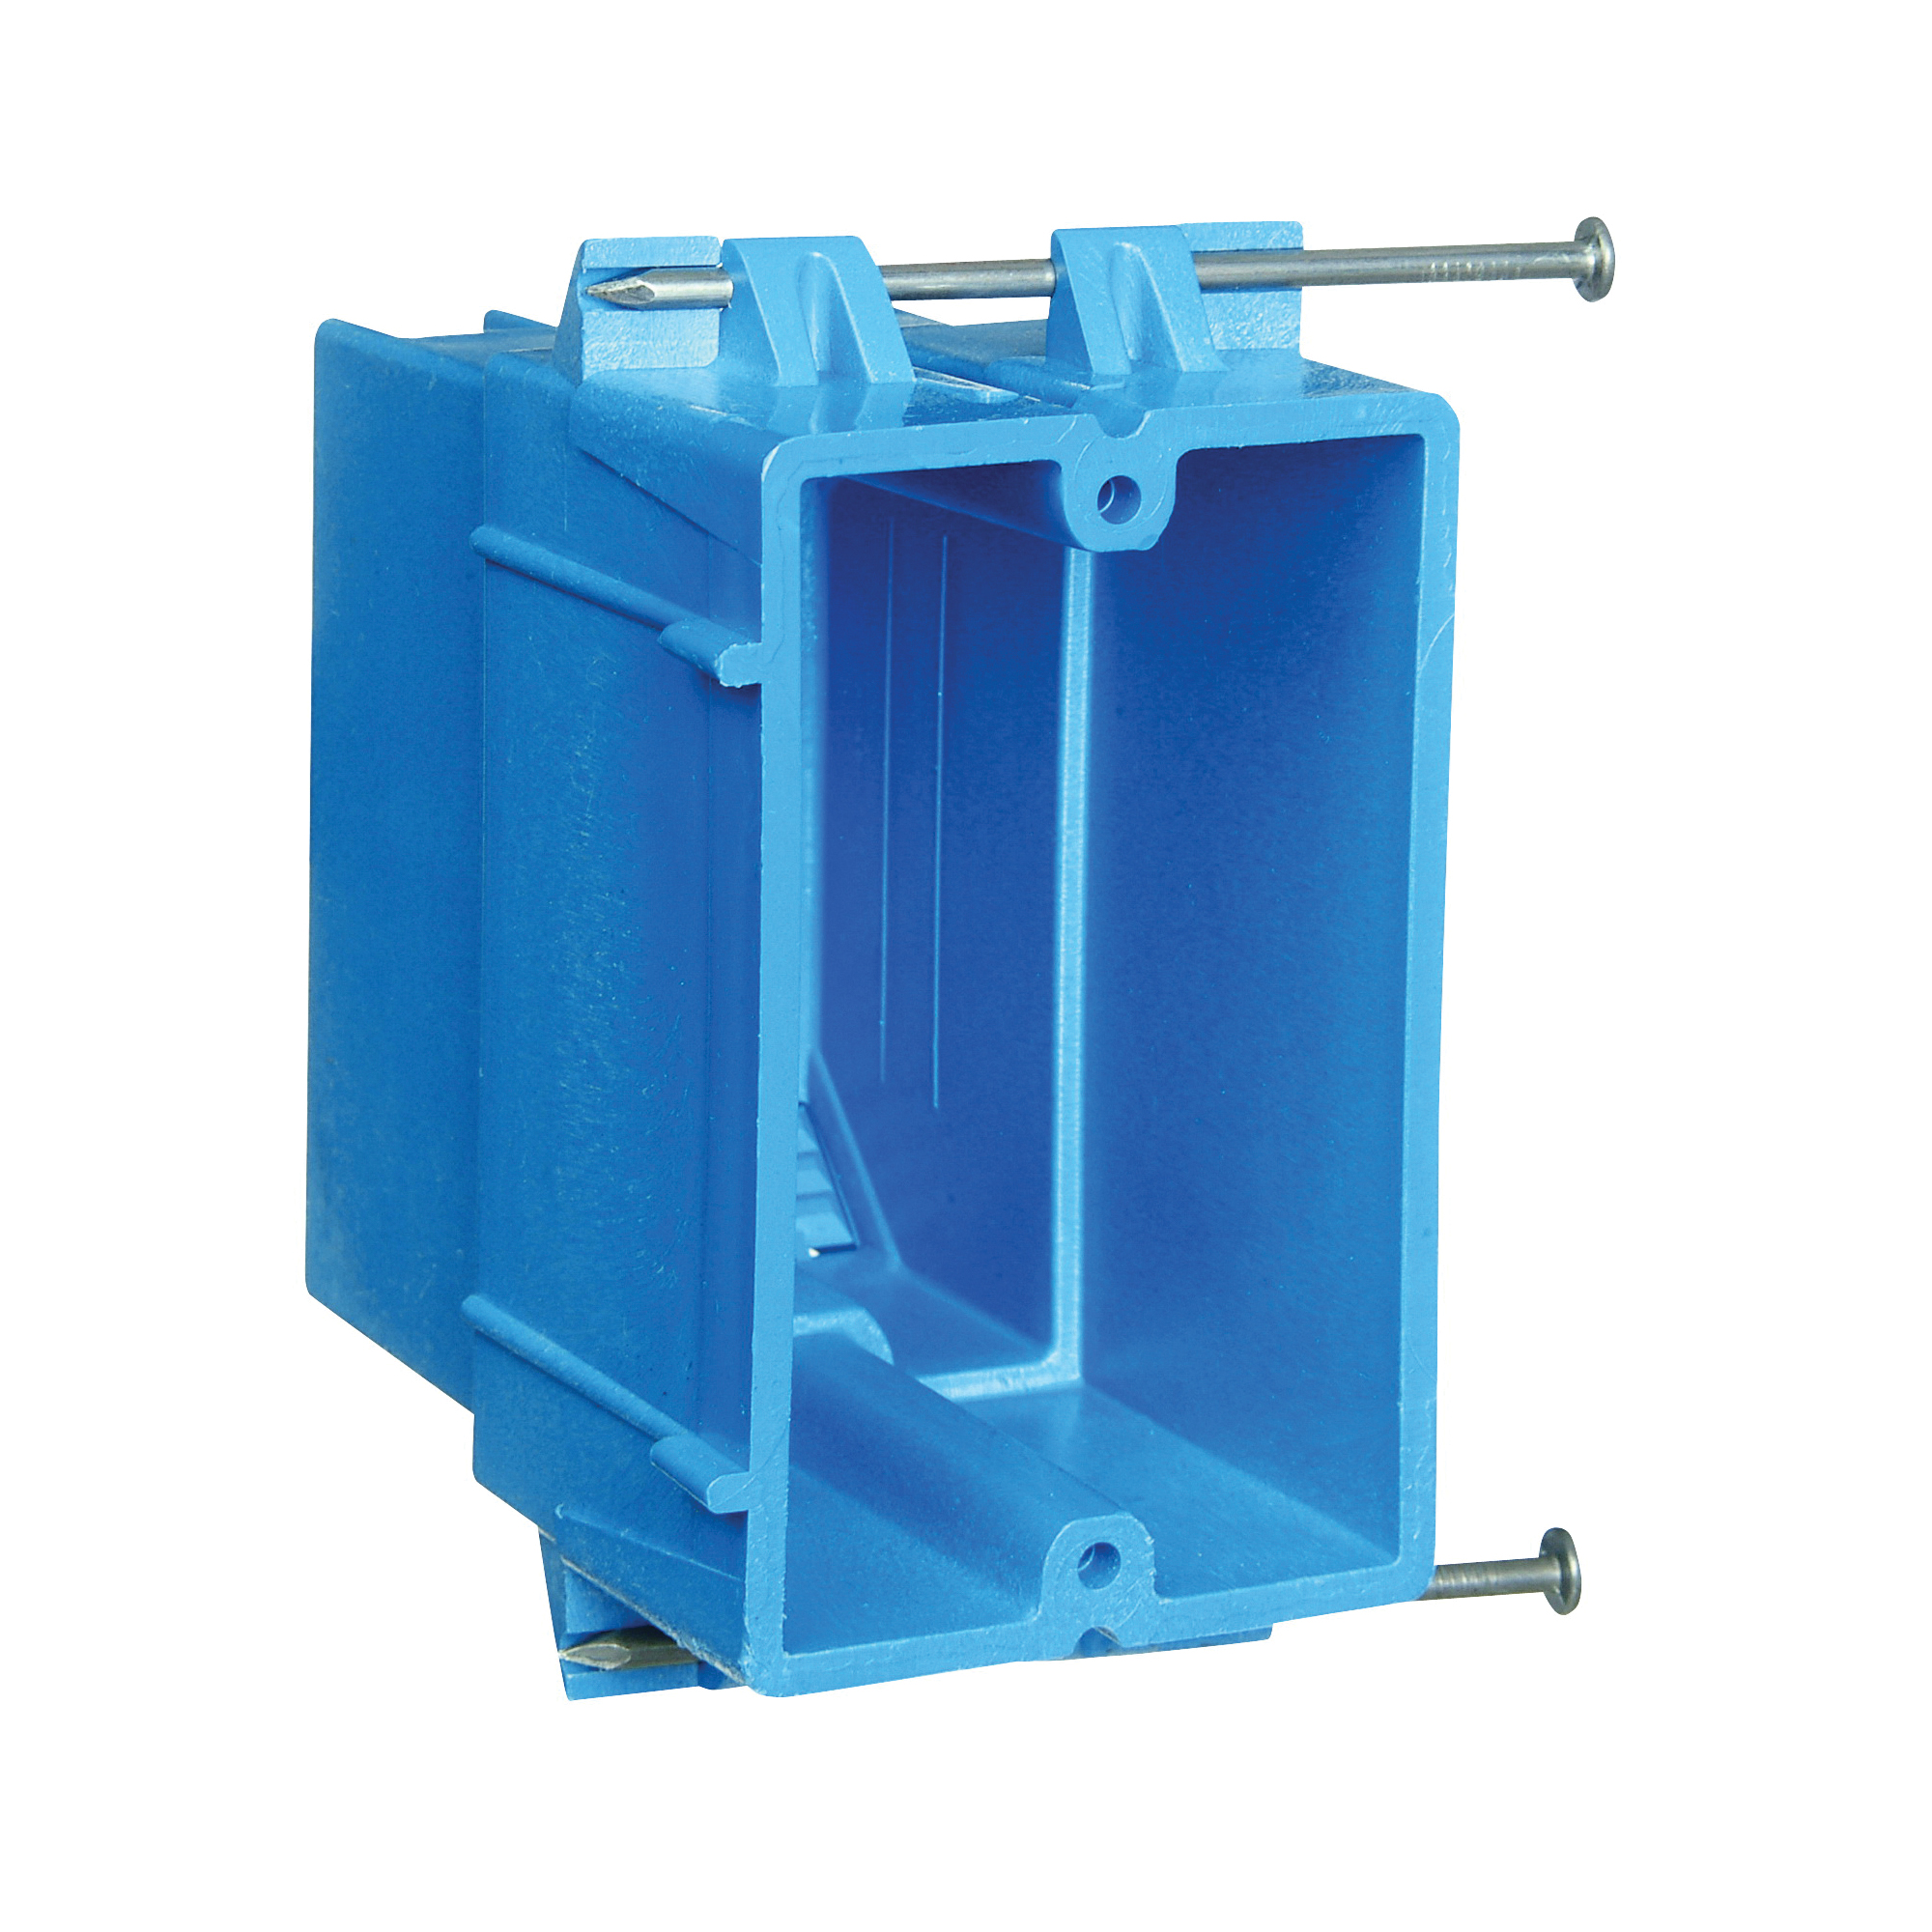 Picture of Carlon BH122A-UPC Outlet Box, 1-Gang, PVC, Blue, Nail Mounting